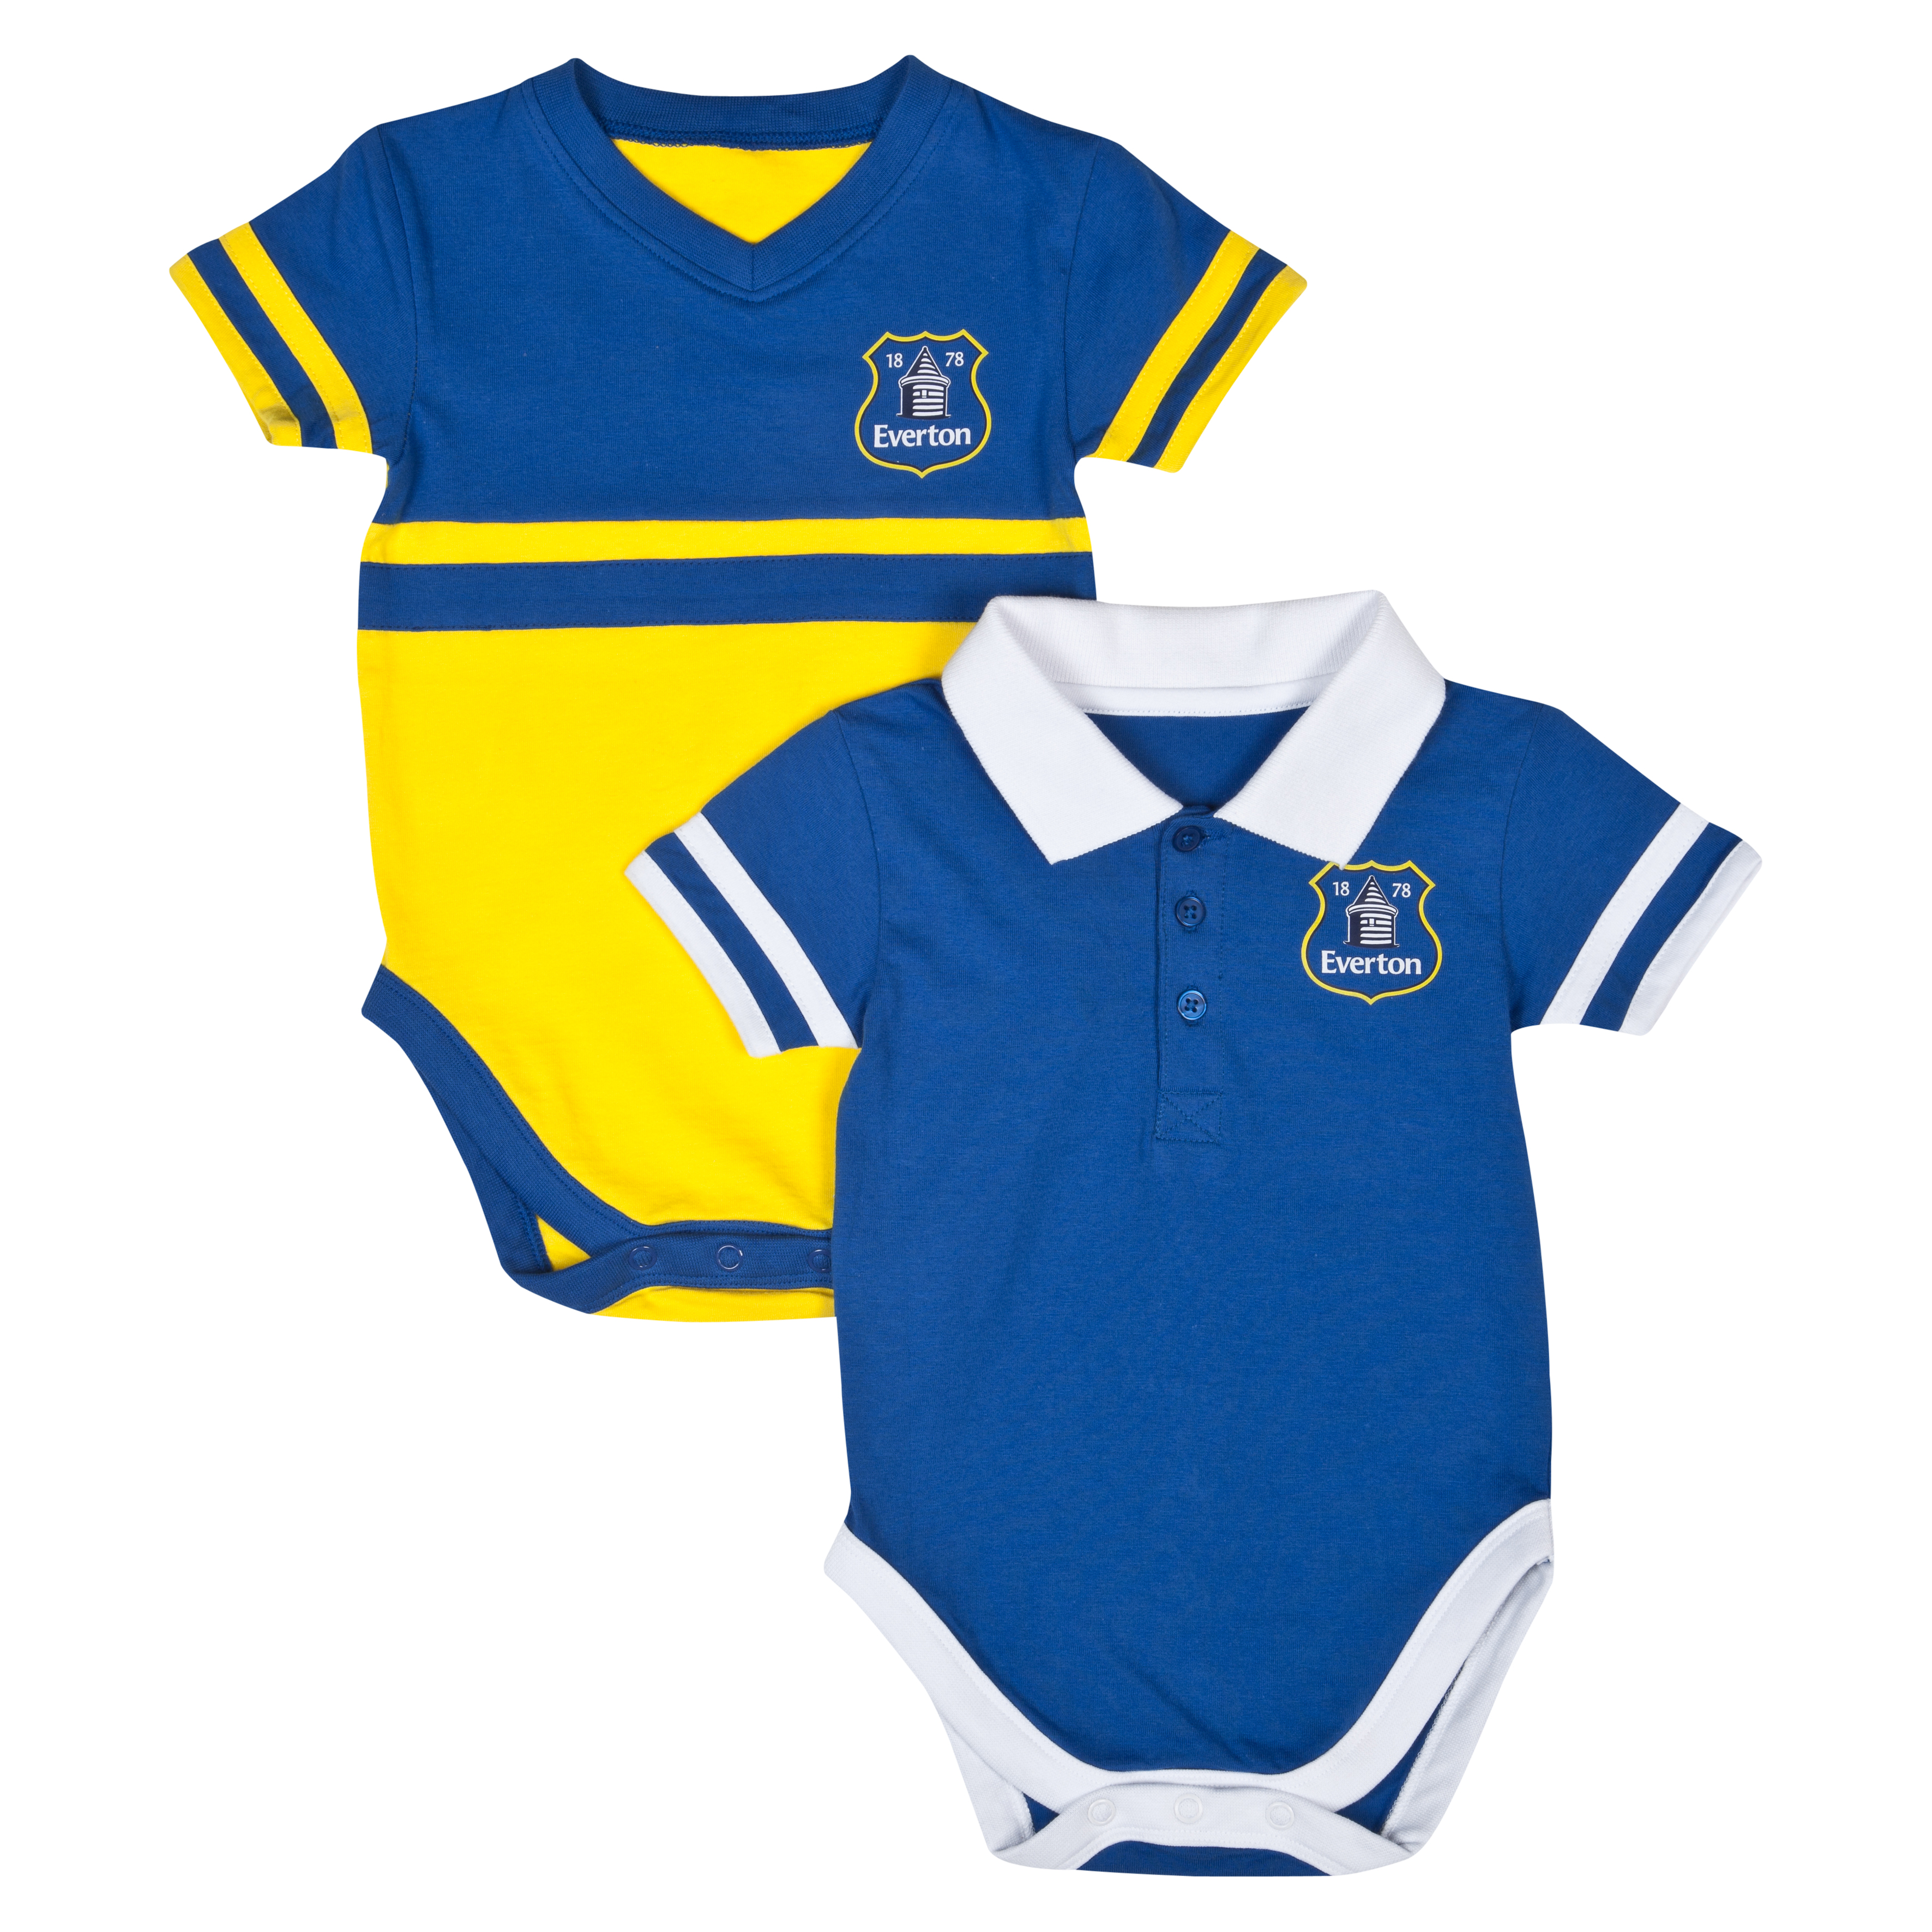 Everton 12/14 Kit Home and Away Bodysuits - Blue/Yellow - Baby